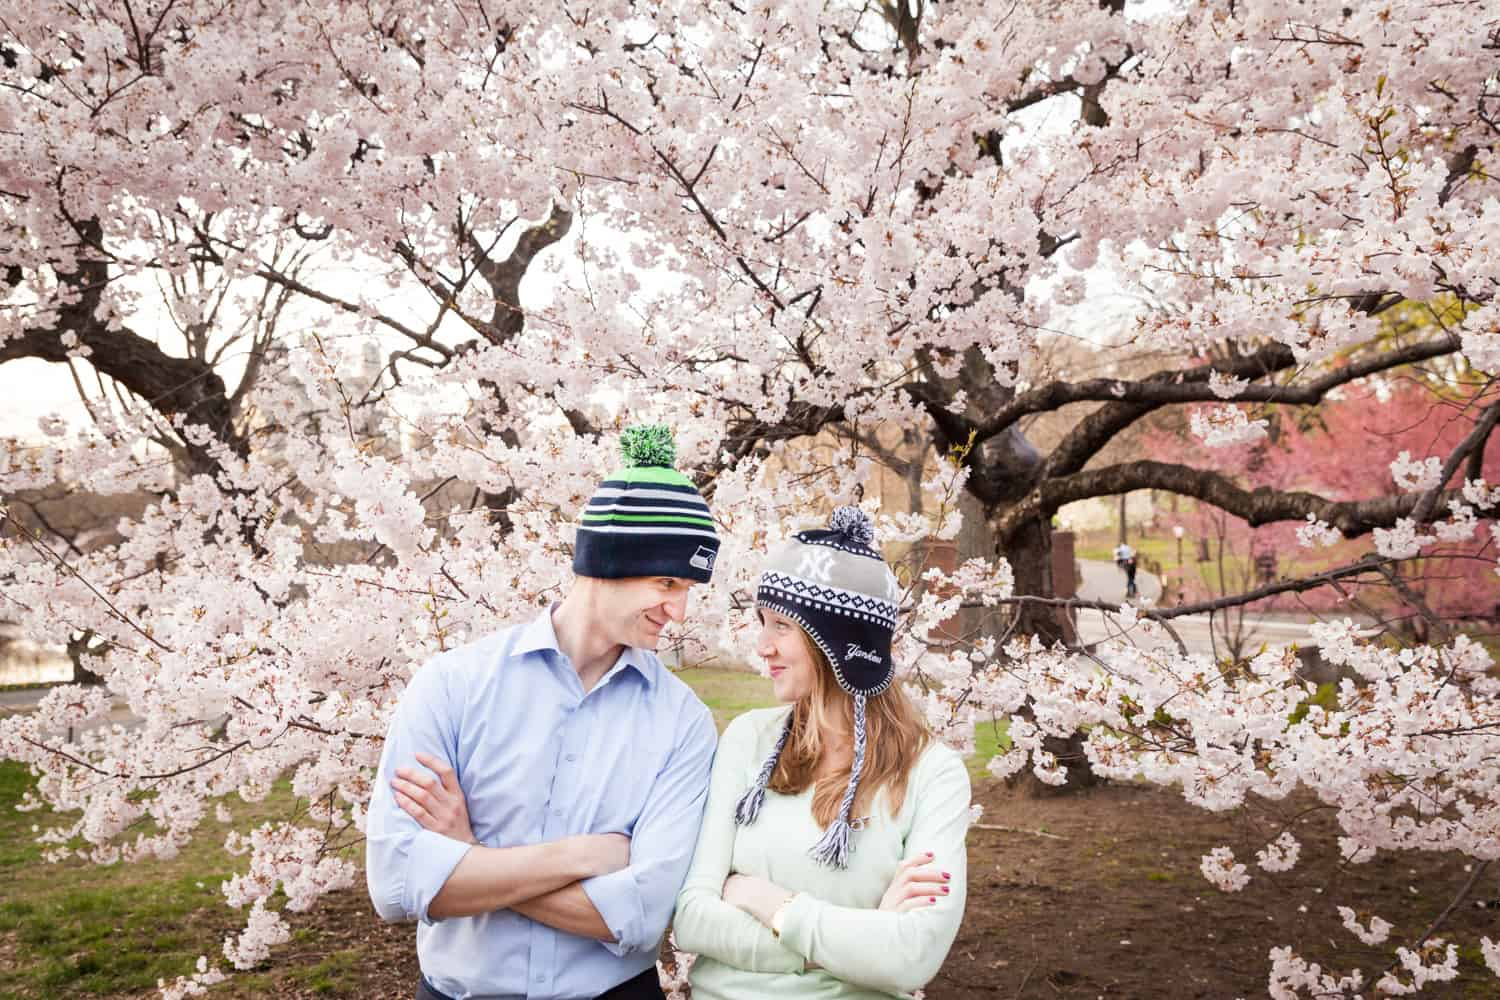 Couple with folded arms and wearing funny knit hats in front of cherry blossom trees in Central Park